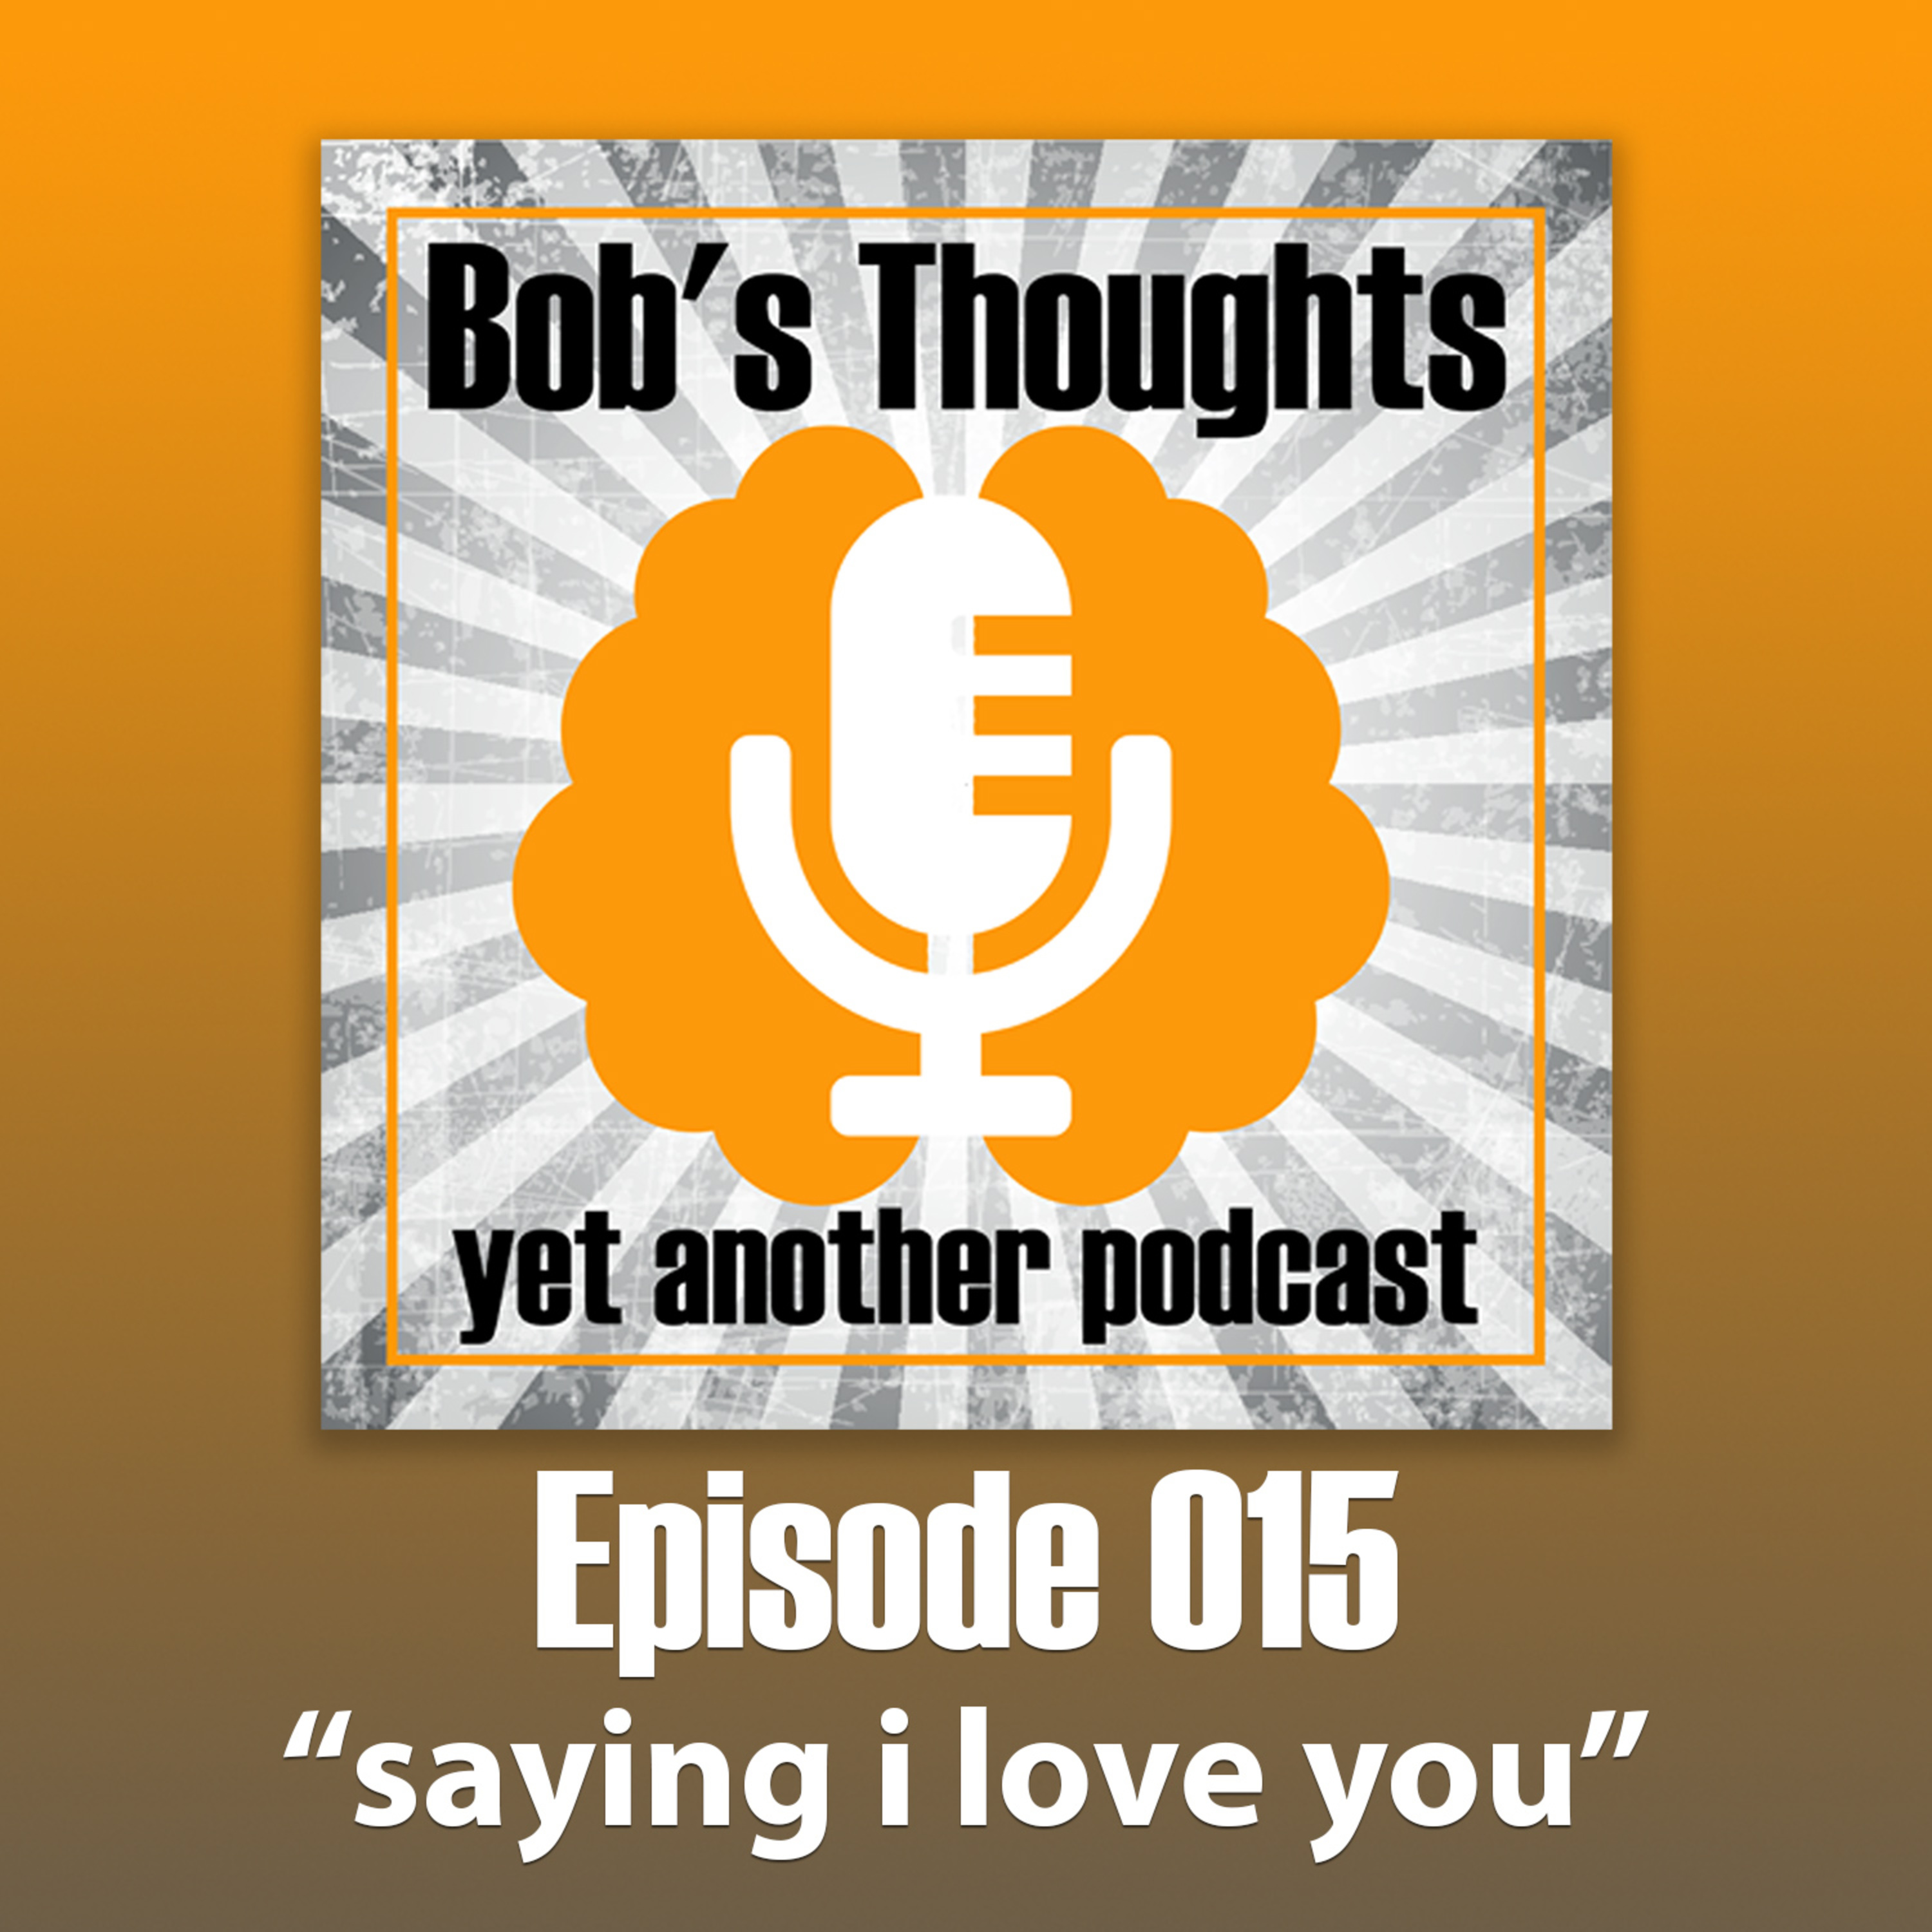 Ep. 015 - Saying I Love You